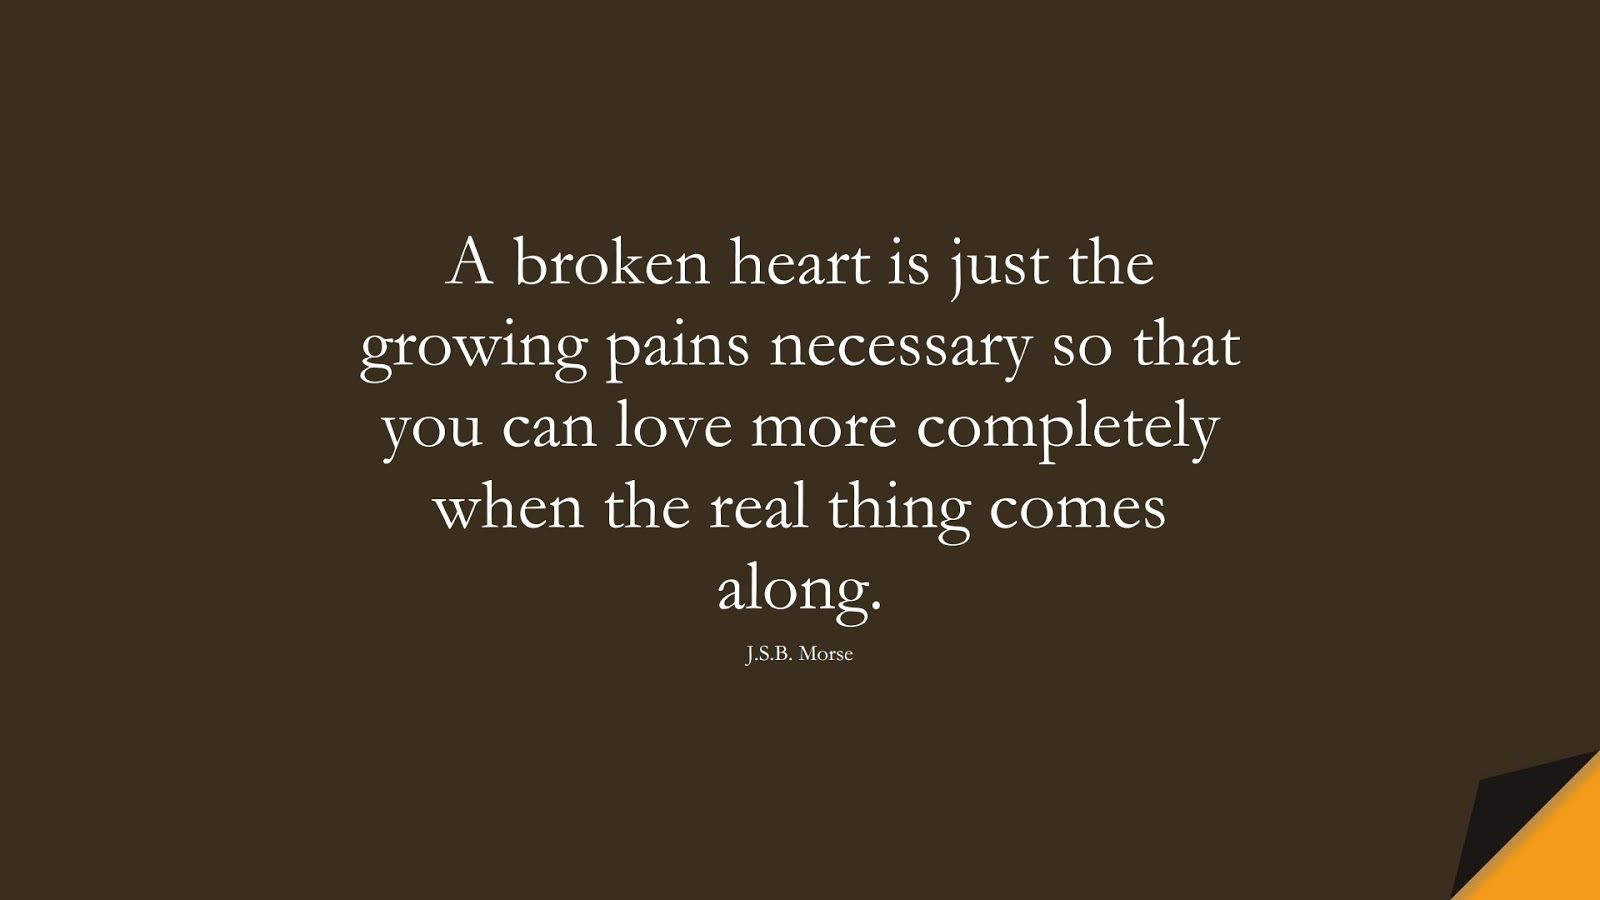 A broken heart is just the growing pains necessary so that you can love more completely when the real thing comes along. (J.S.B. Morse);  #SadLoveQuotes